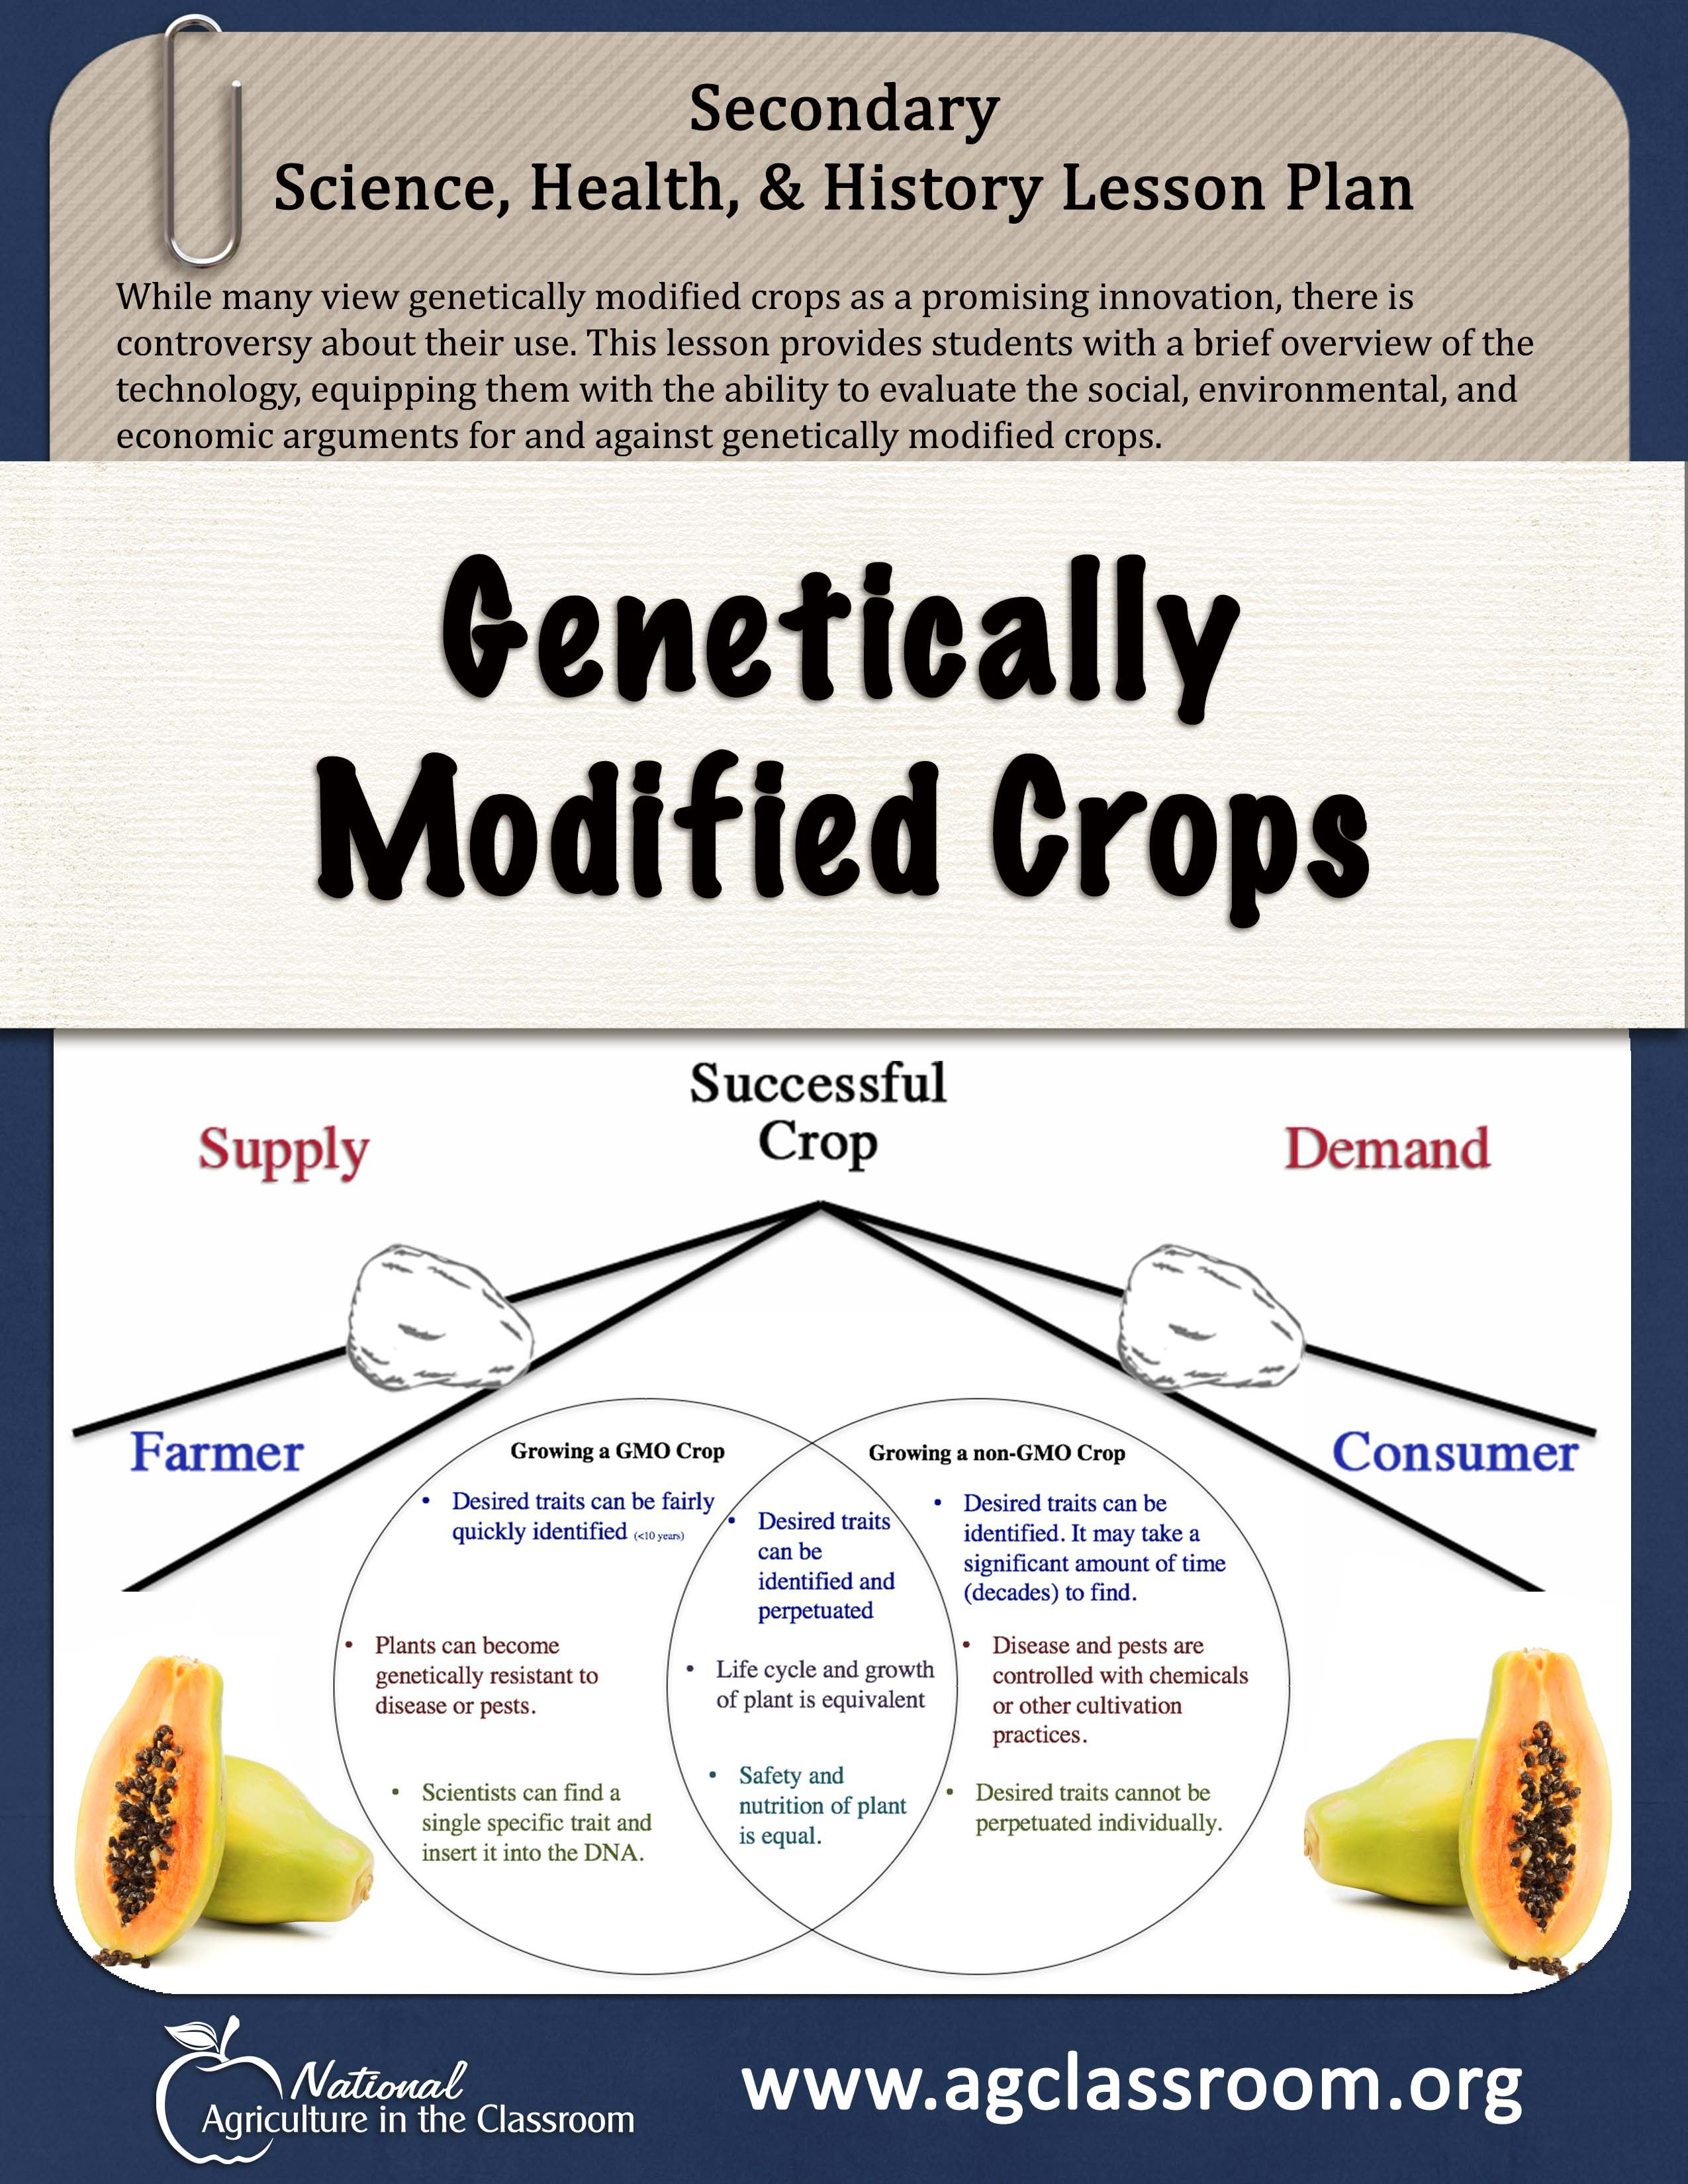 Gmos Are An Important Topic In Food Consumption And Agriculture